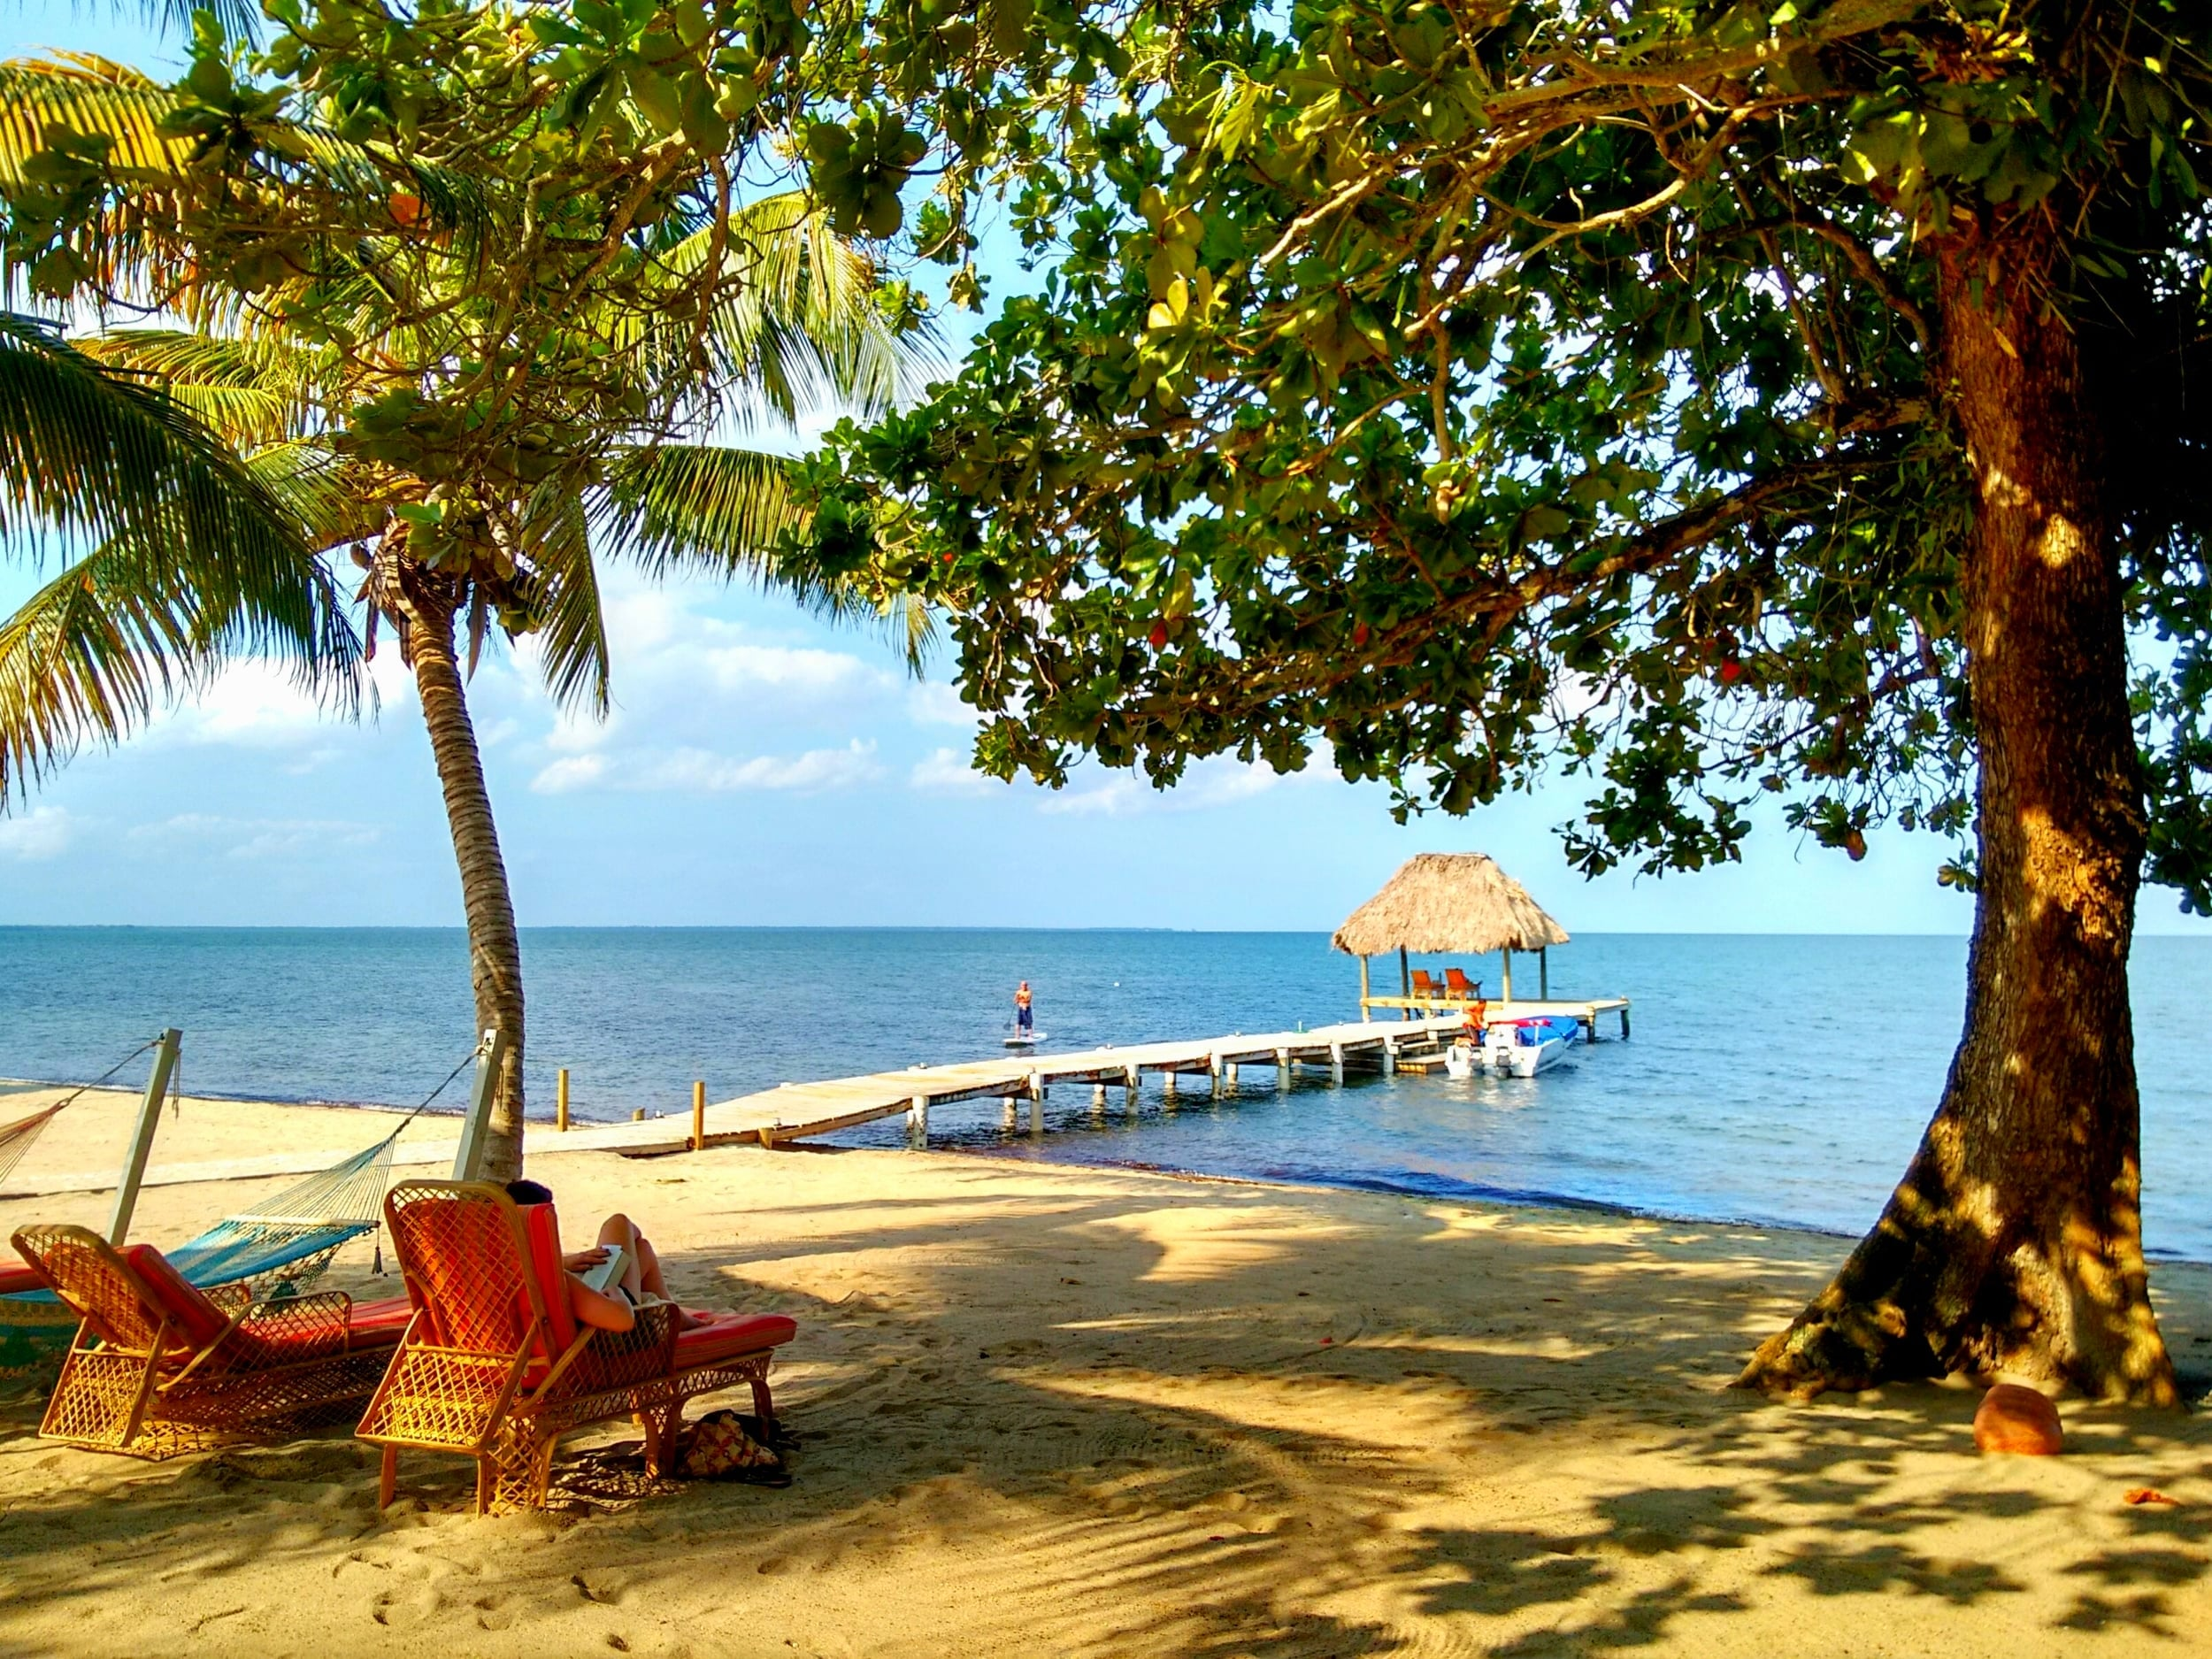 Our Custom Travel Itineraries combine the best that Belize has to offer into unforgettable journeys.